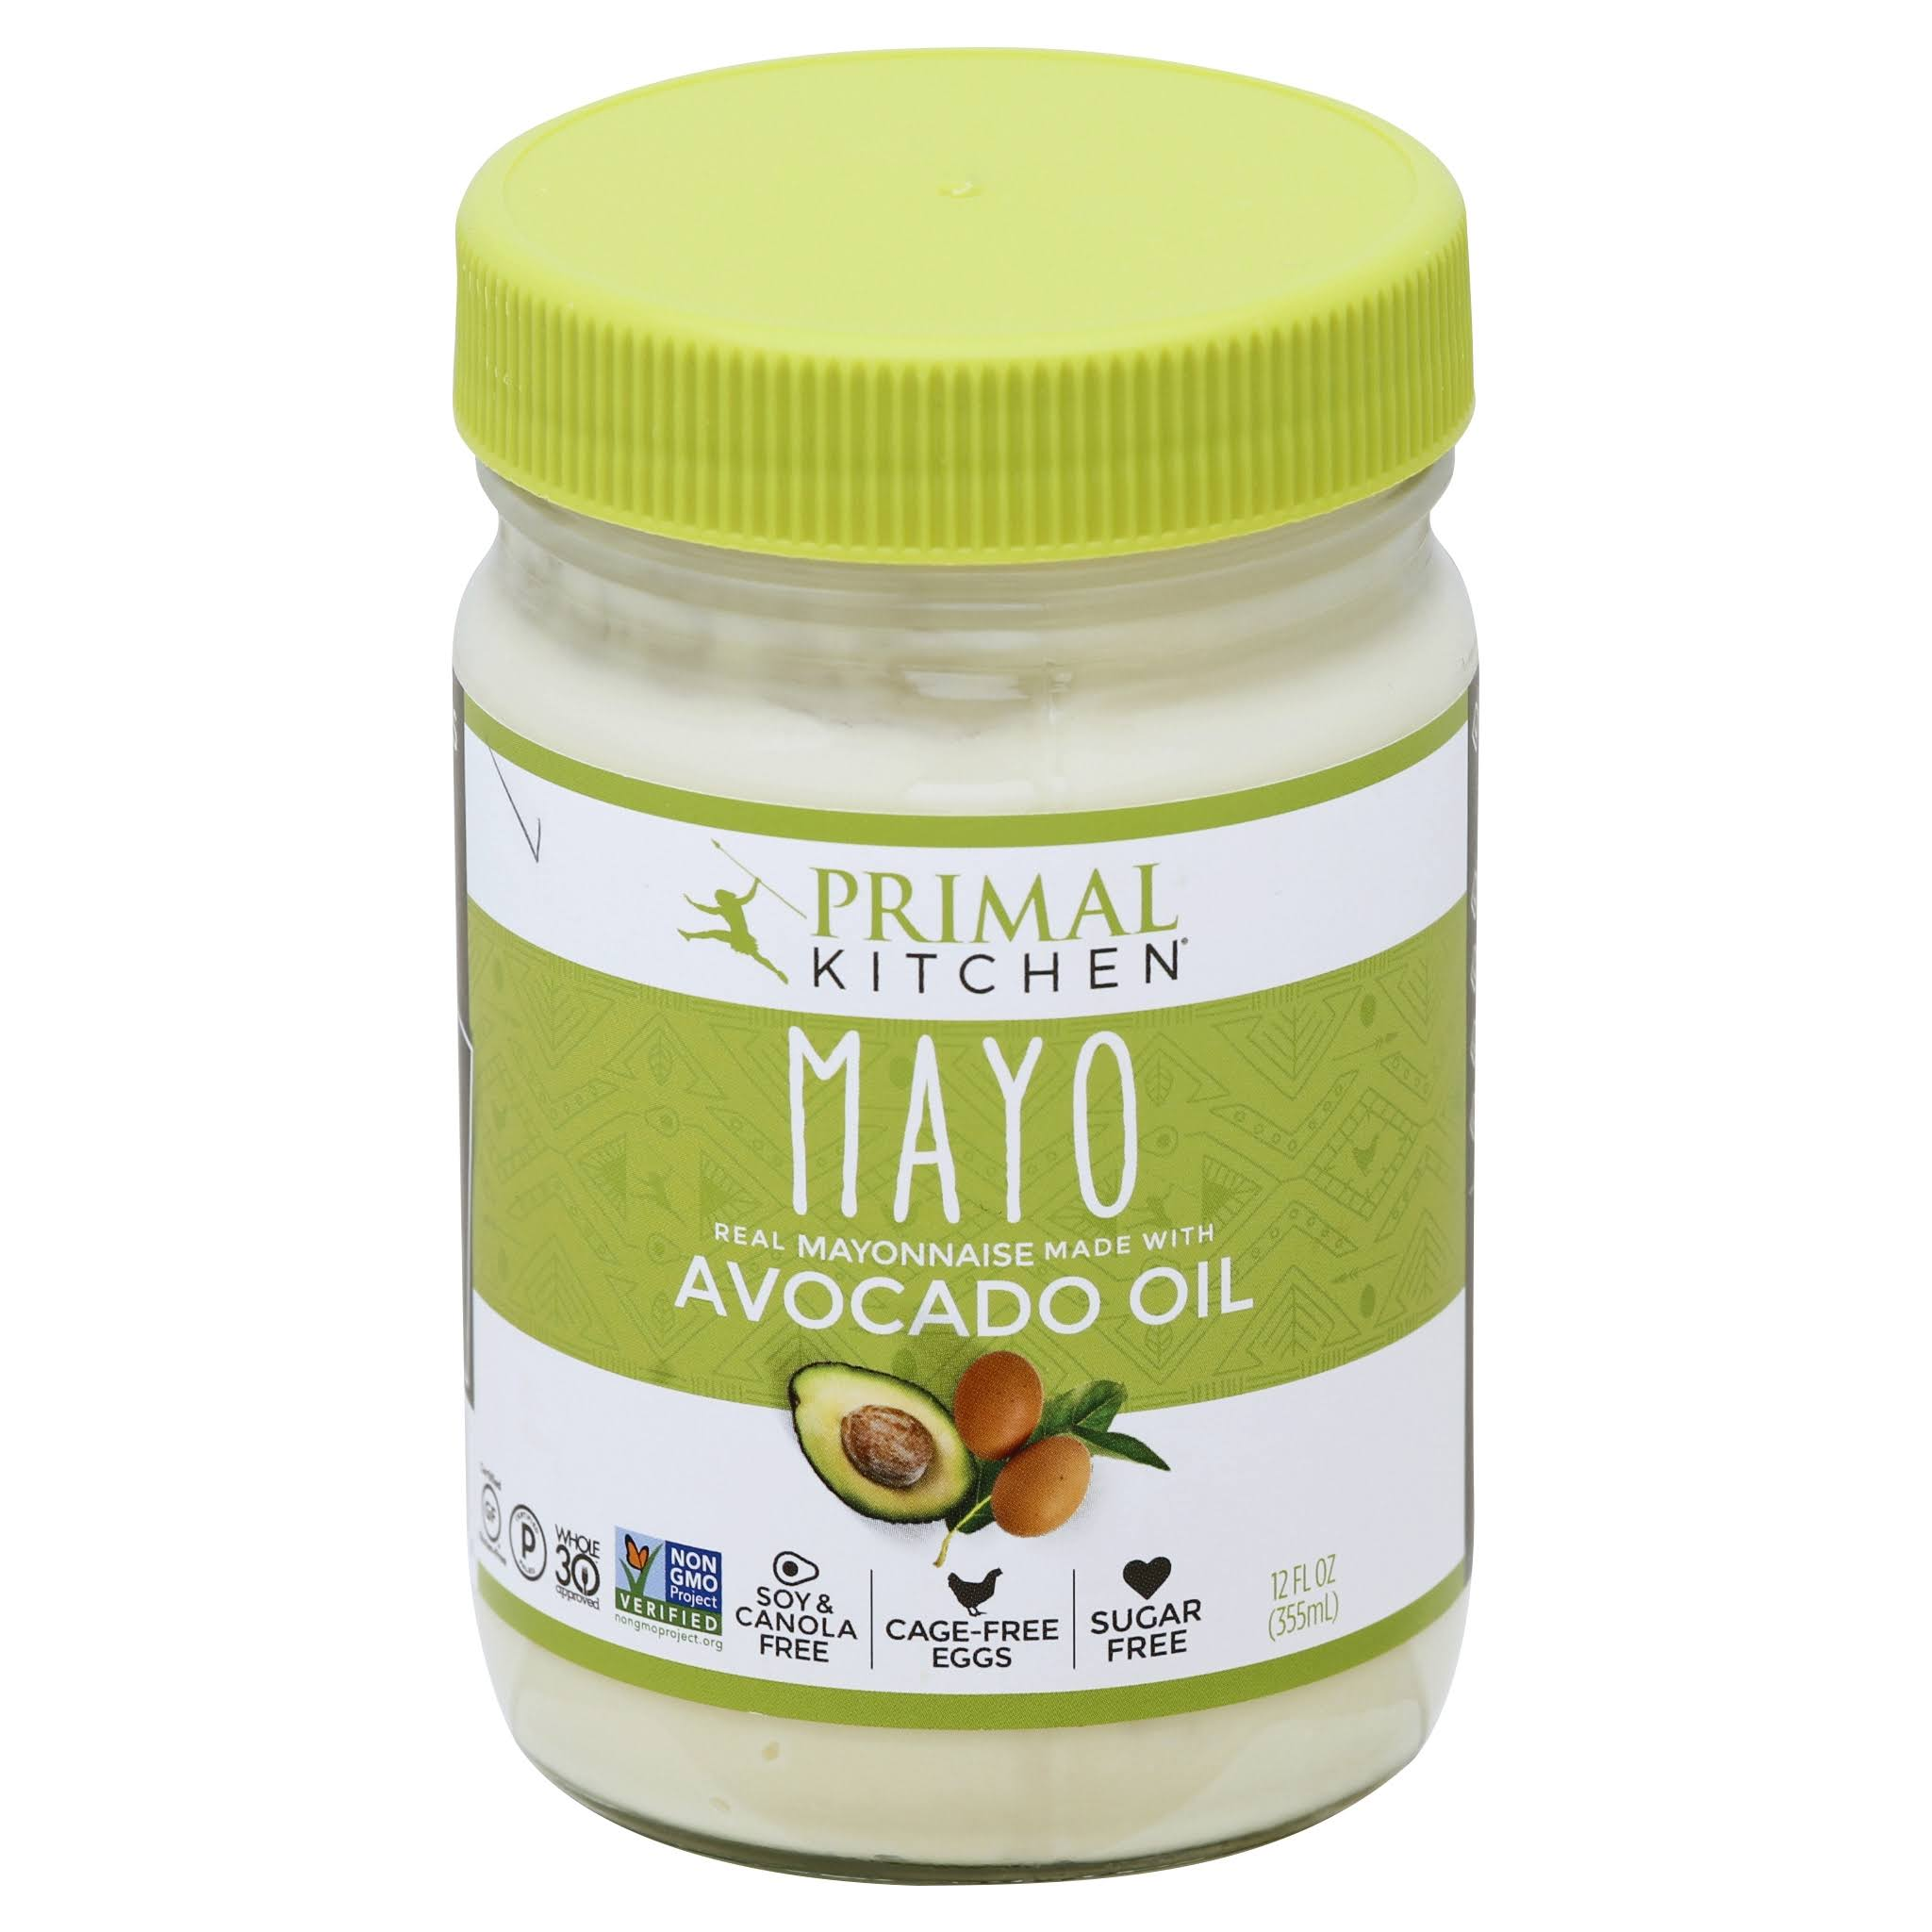 Primal Kitchen Mayo Made With Avocado Oil - 12oz